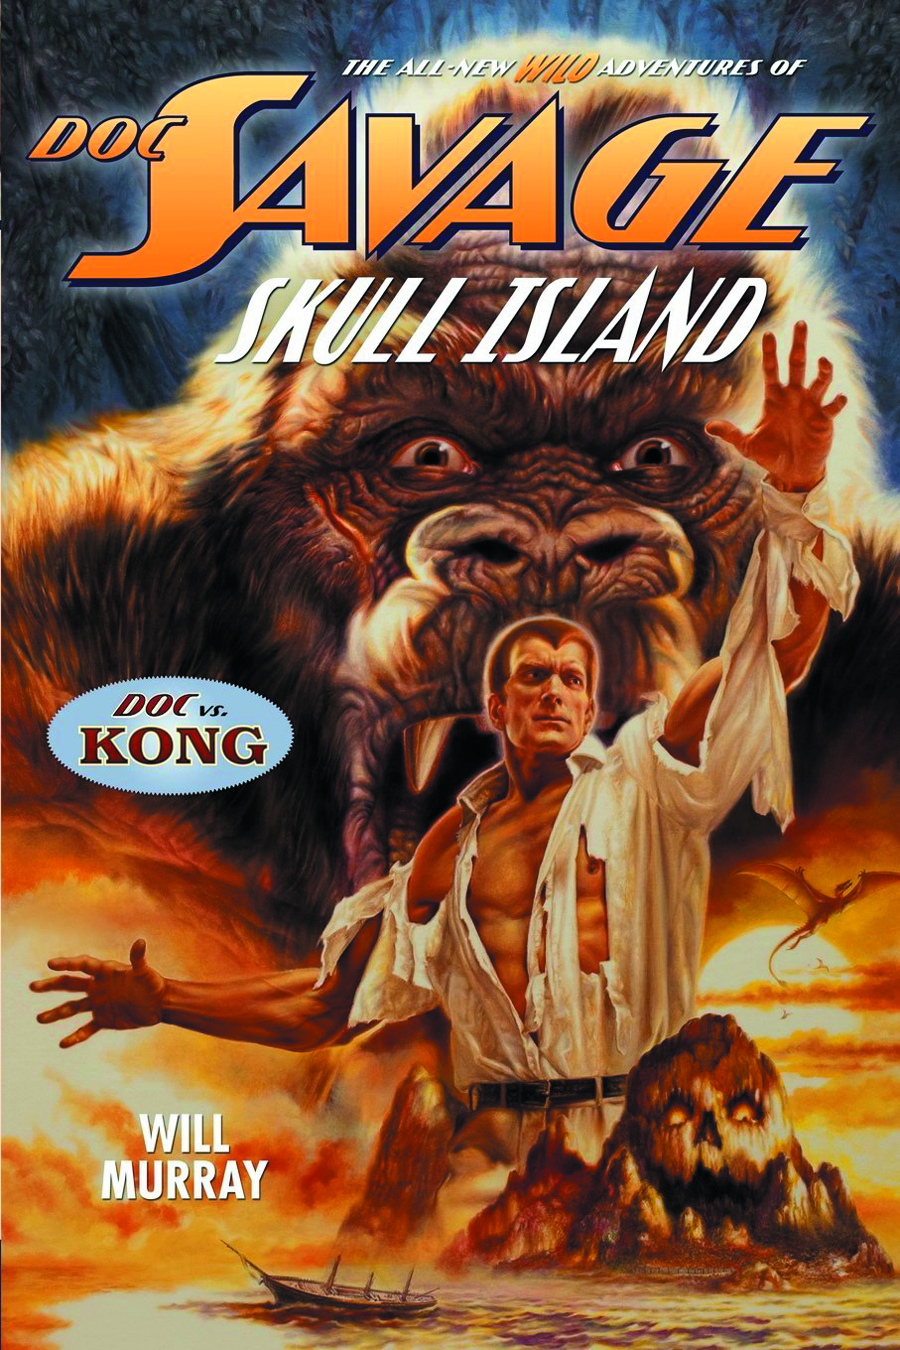 DOC SAVAGE NEW ADV SC VOL 05 SKULL ISLAND